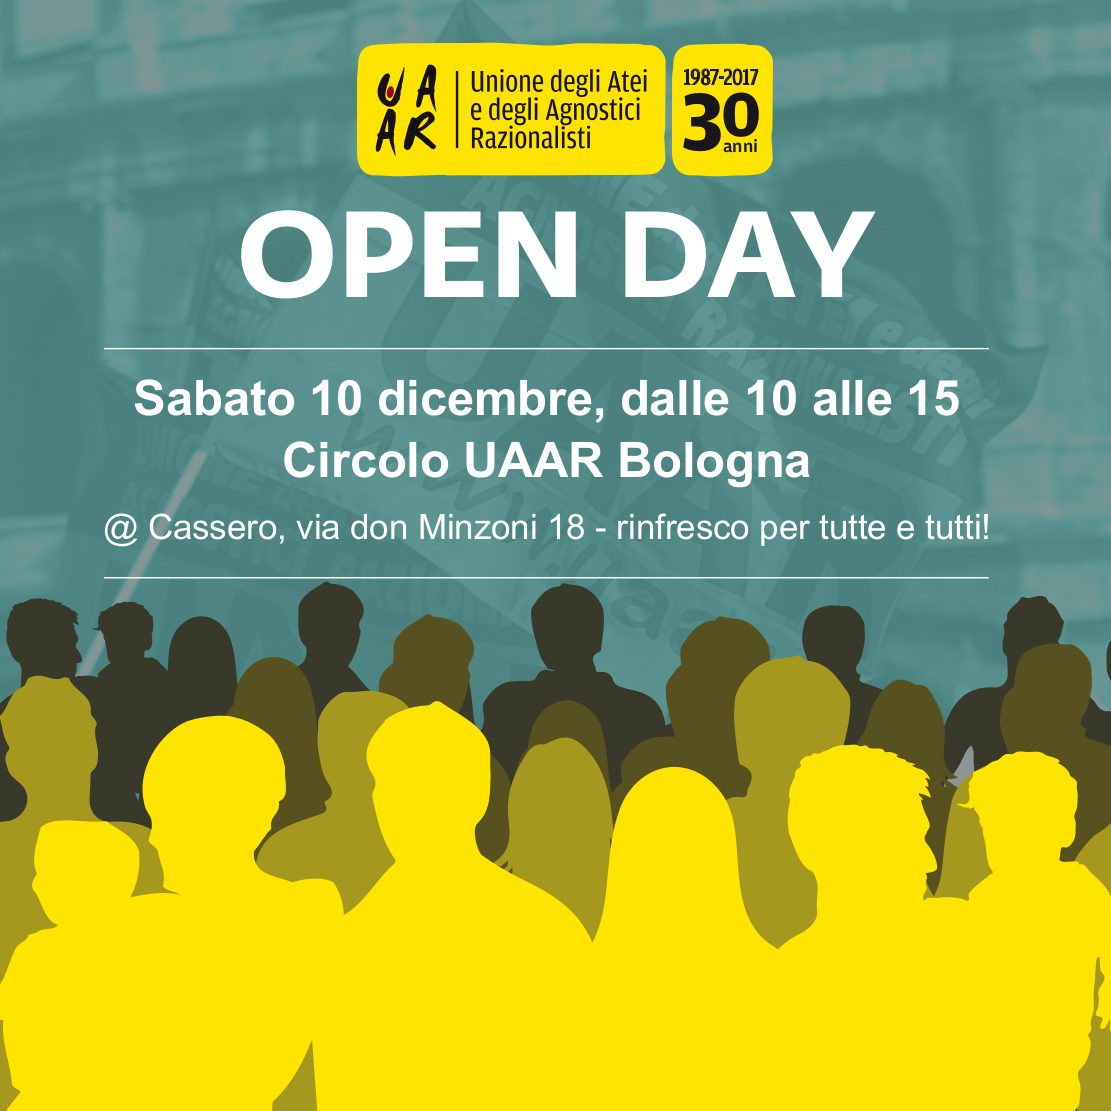 Open Day 10 dic 2016